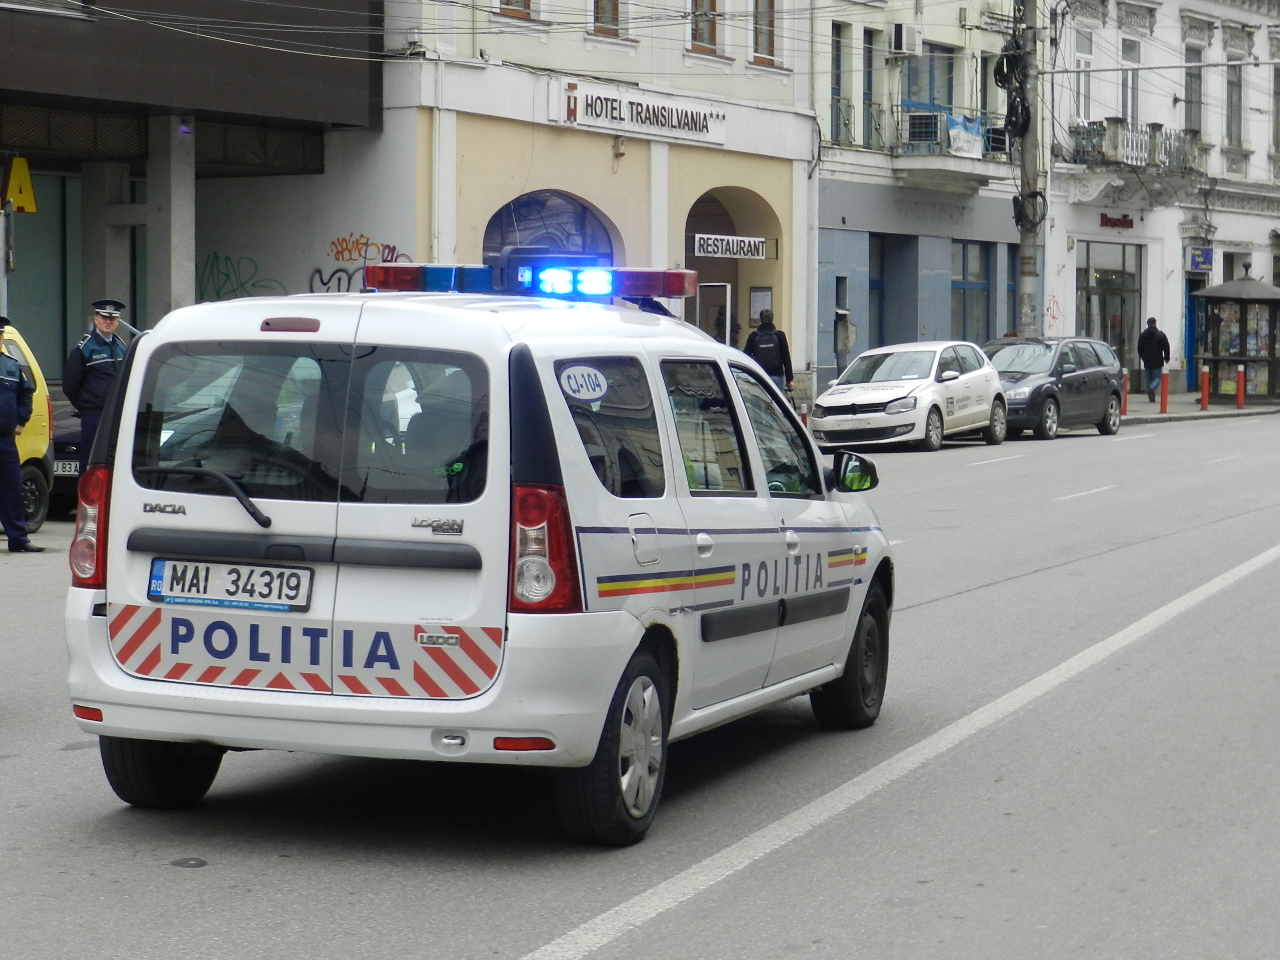 Peste 700 de sancțiuni contravenționale aplicate de polițiștii clujeni în mini-vacanța de 1 mai